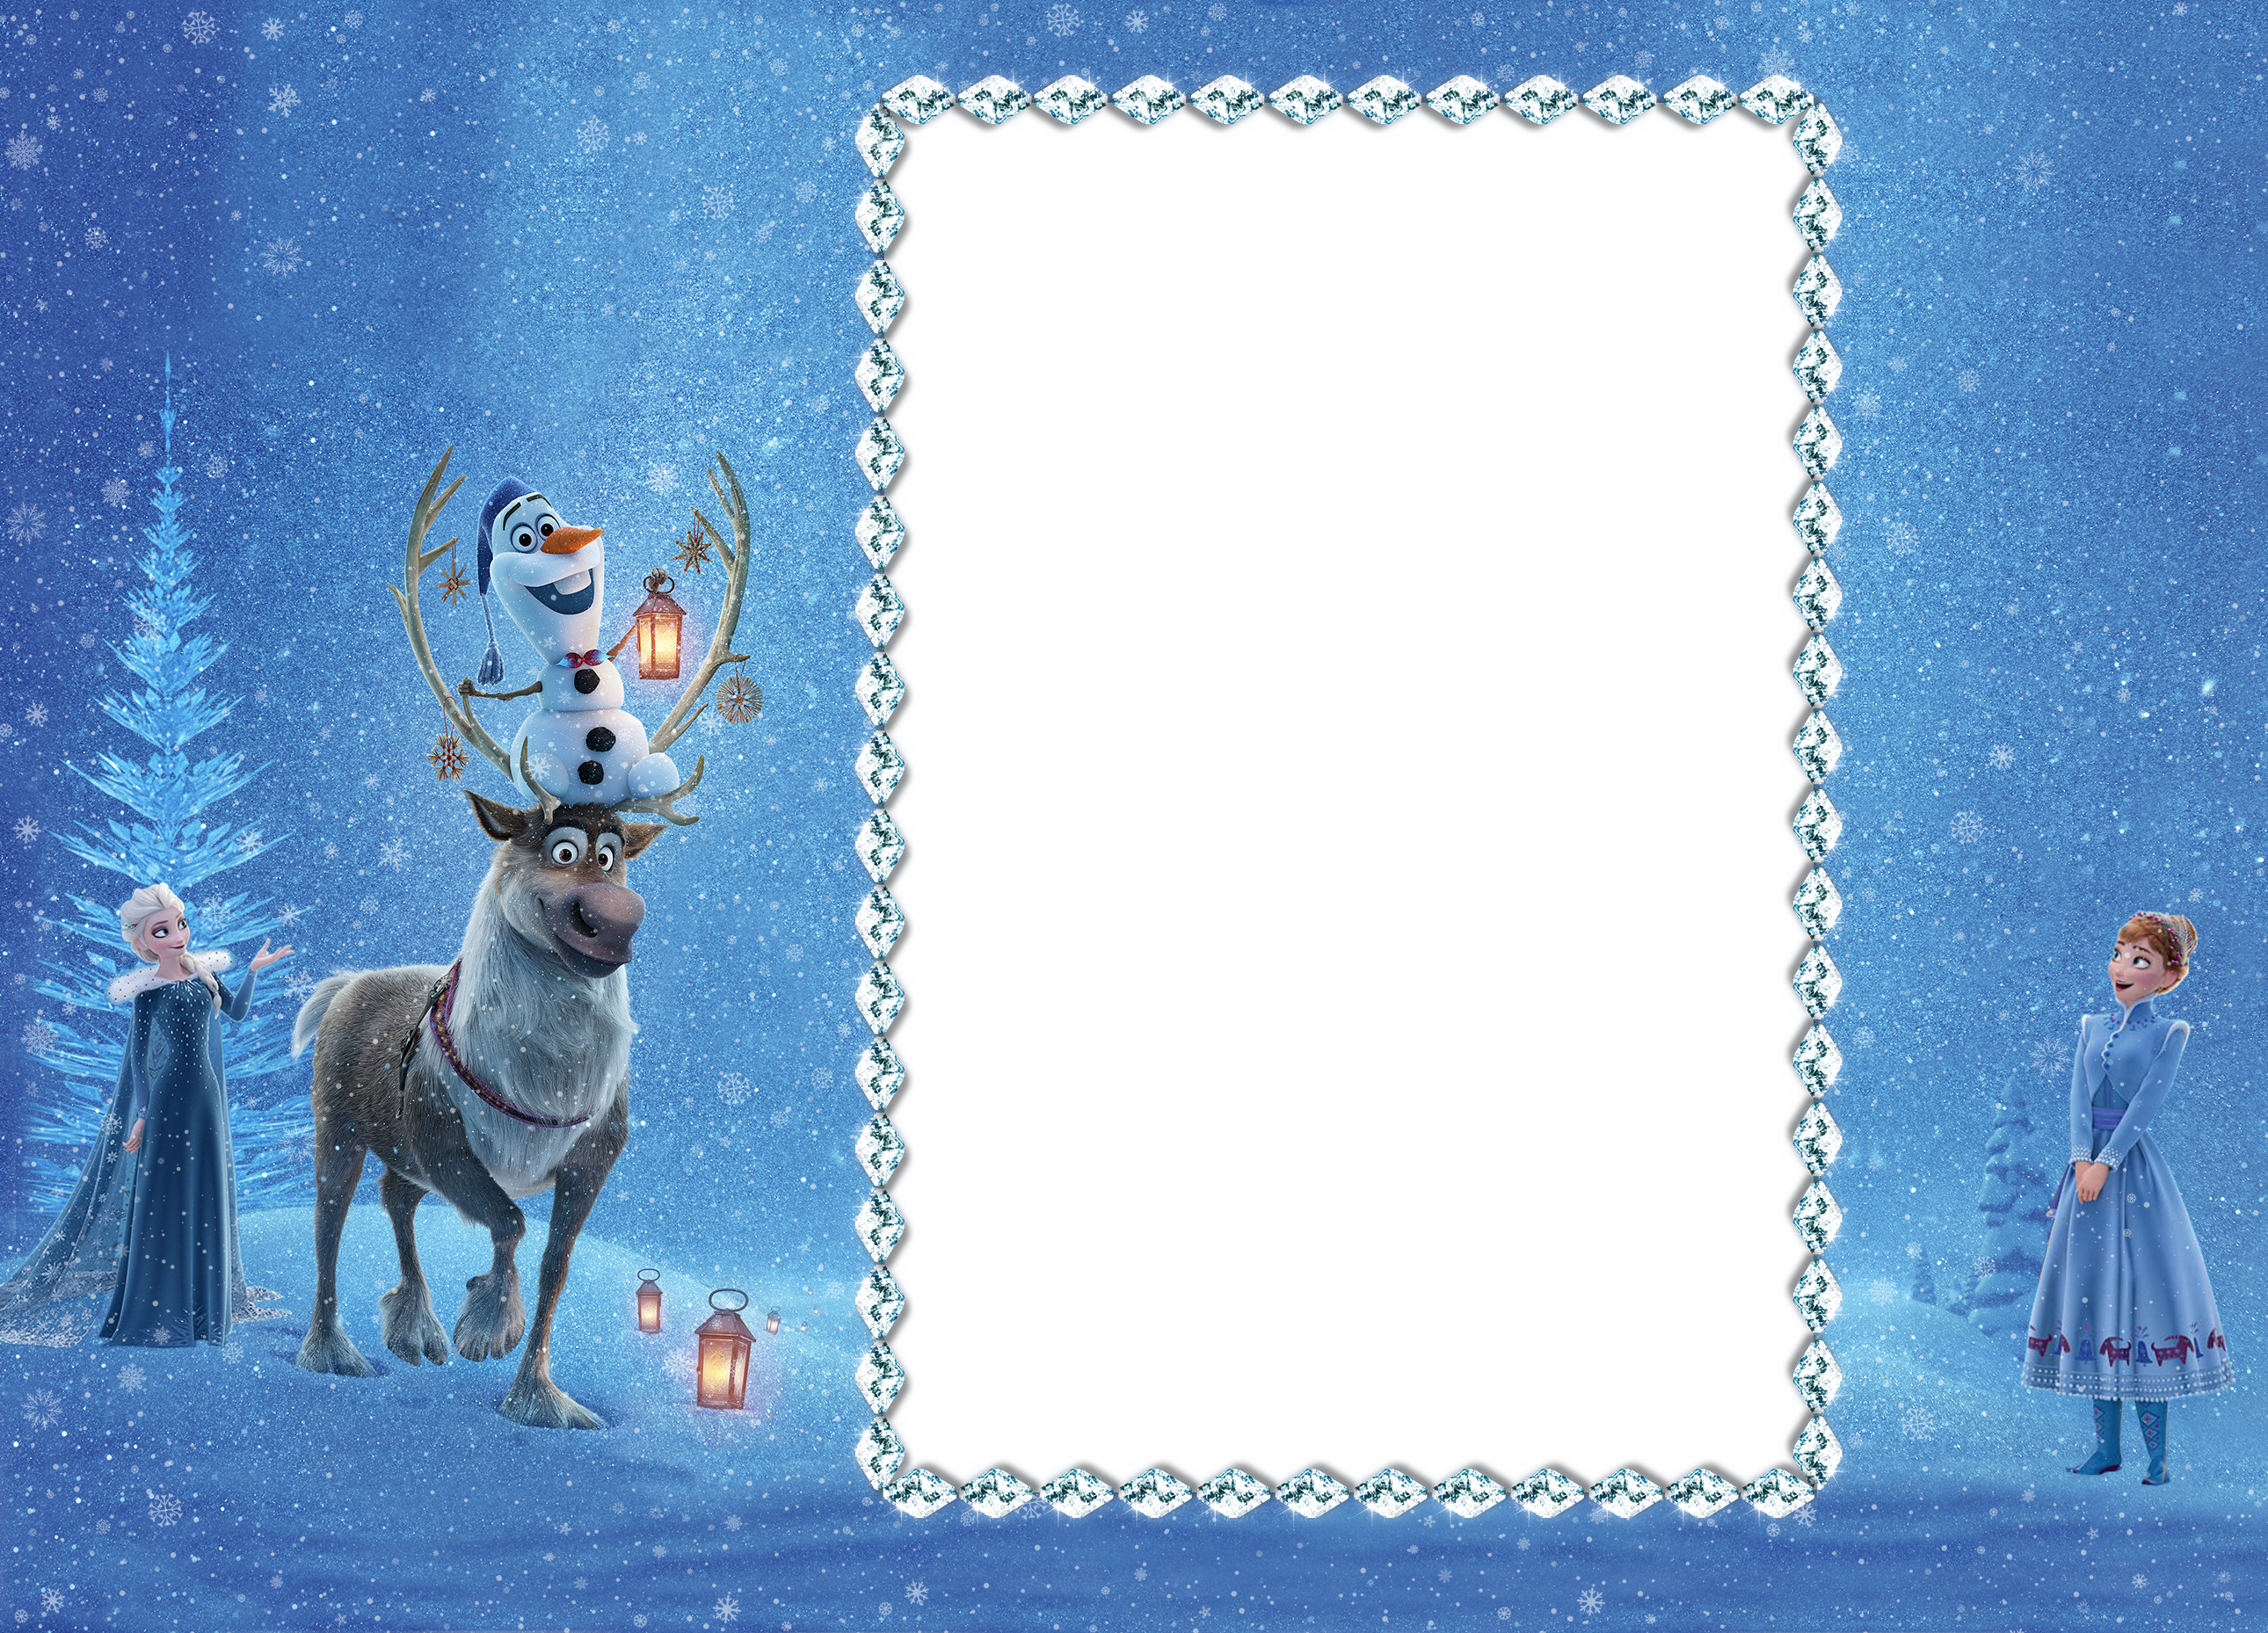 Frozen frame png. Olaf adventure transparent gallery